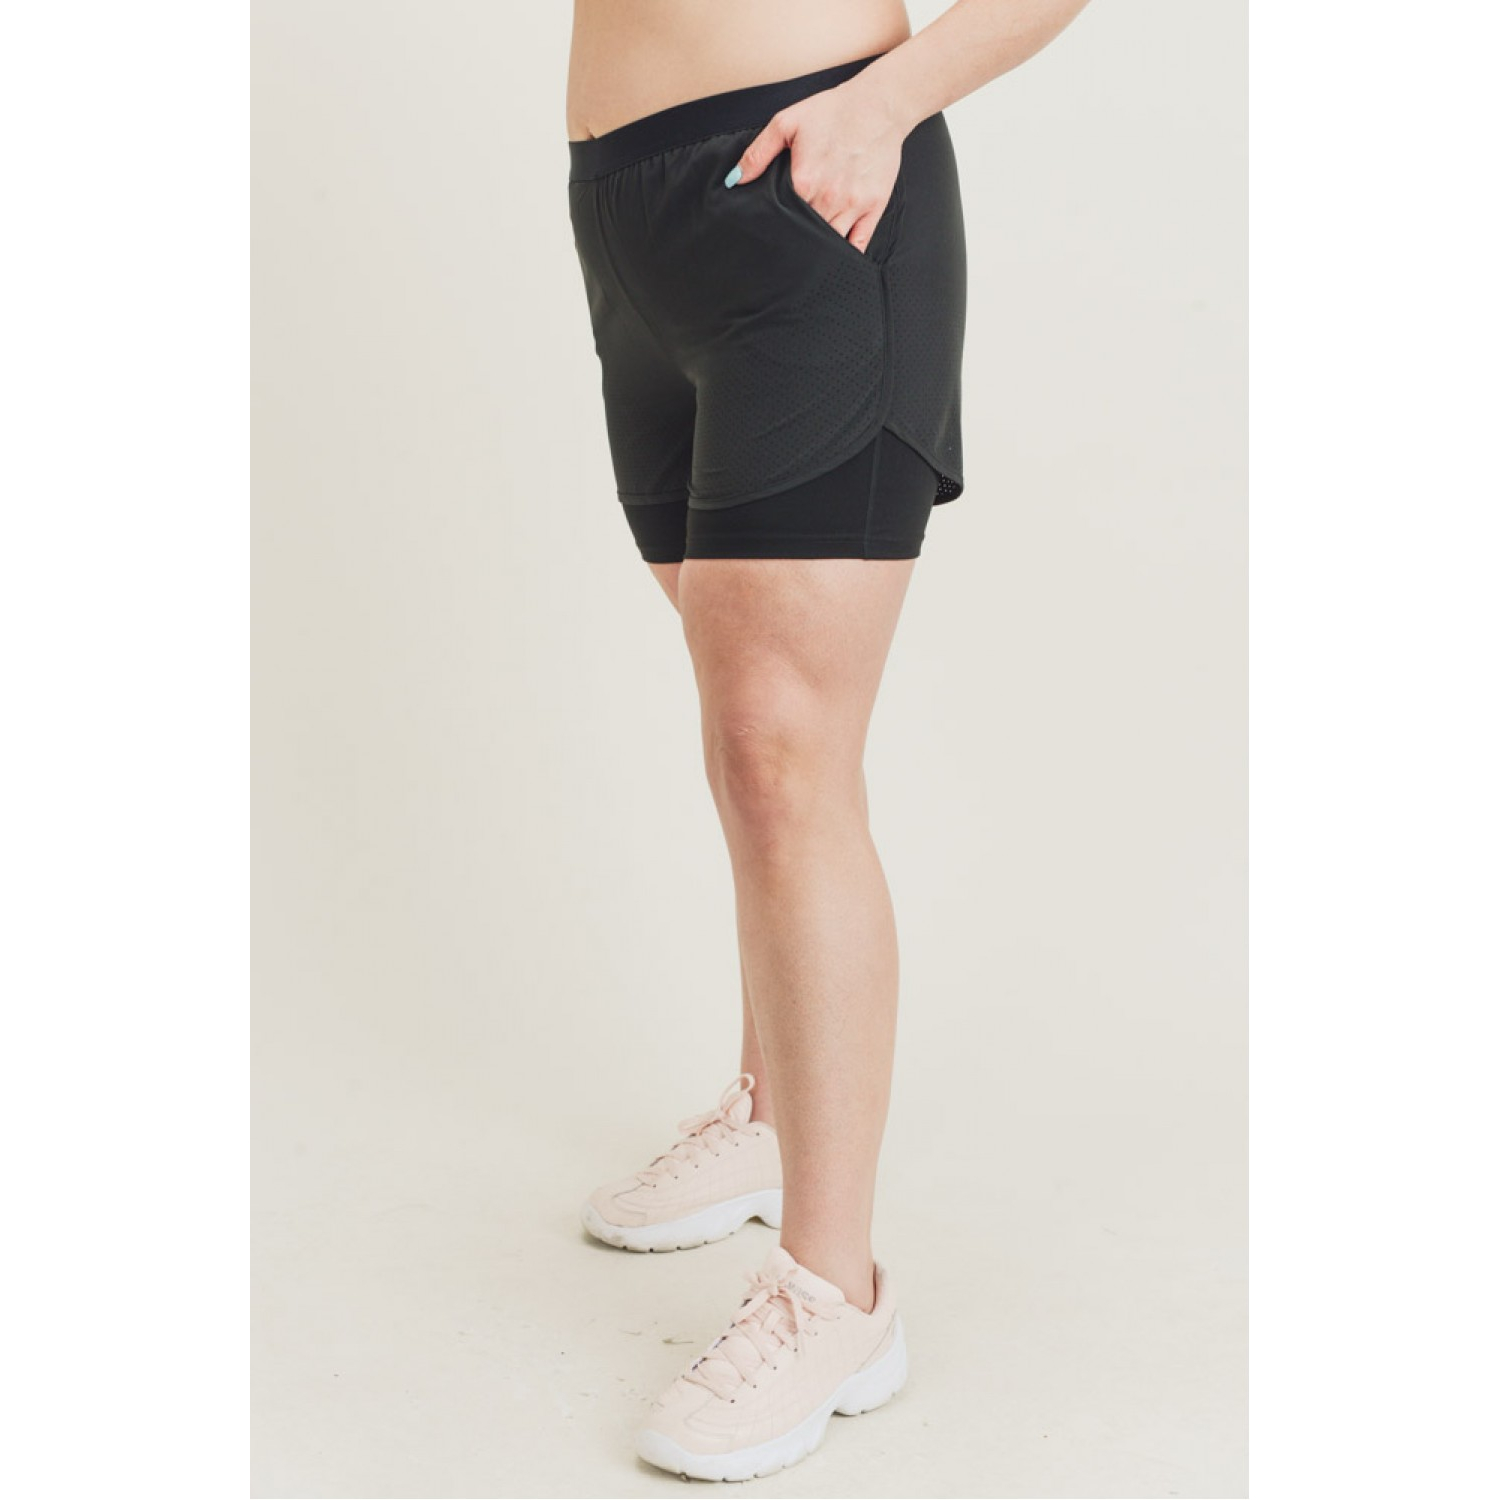 Hybrid Perforated Active Short Shorts Black XL